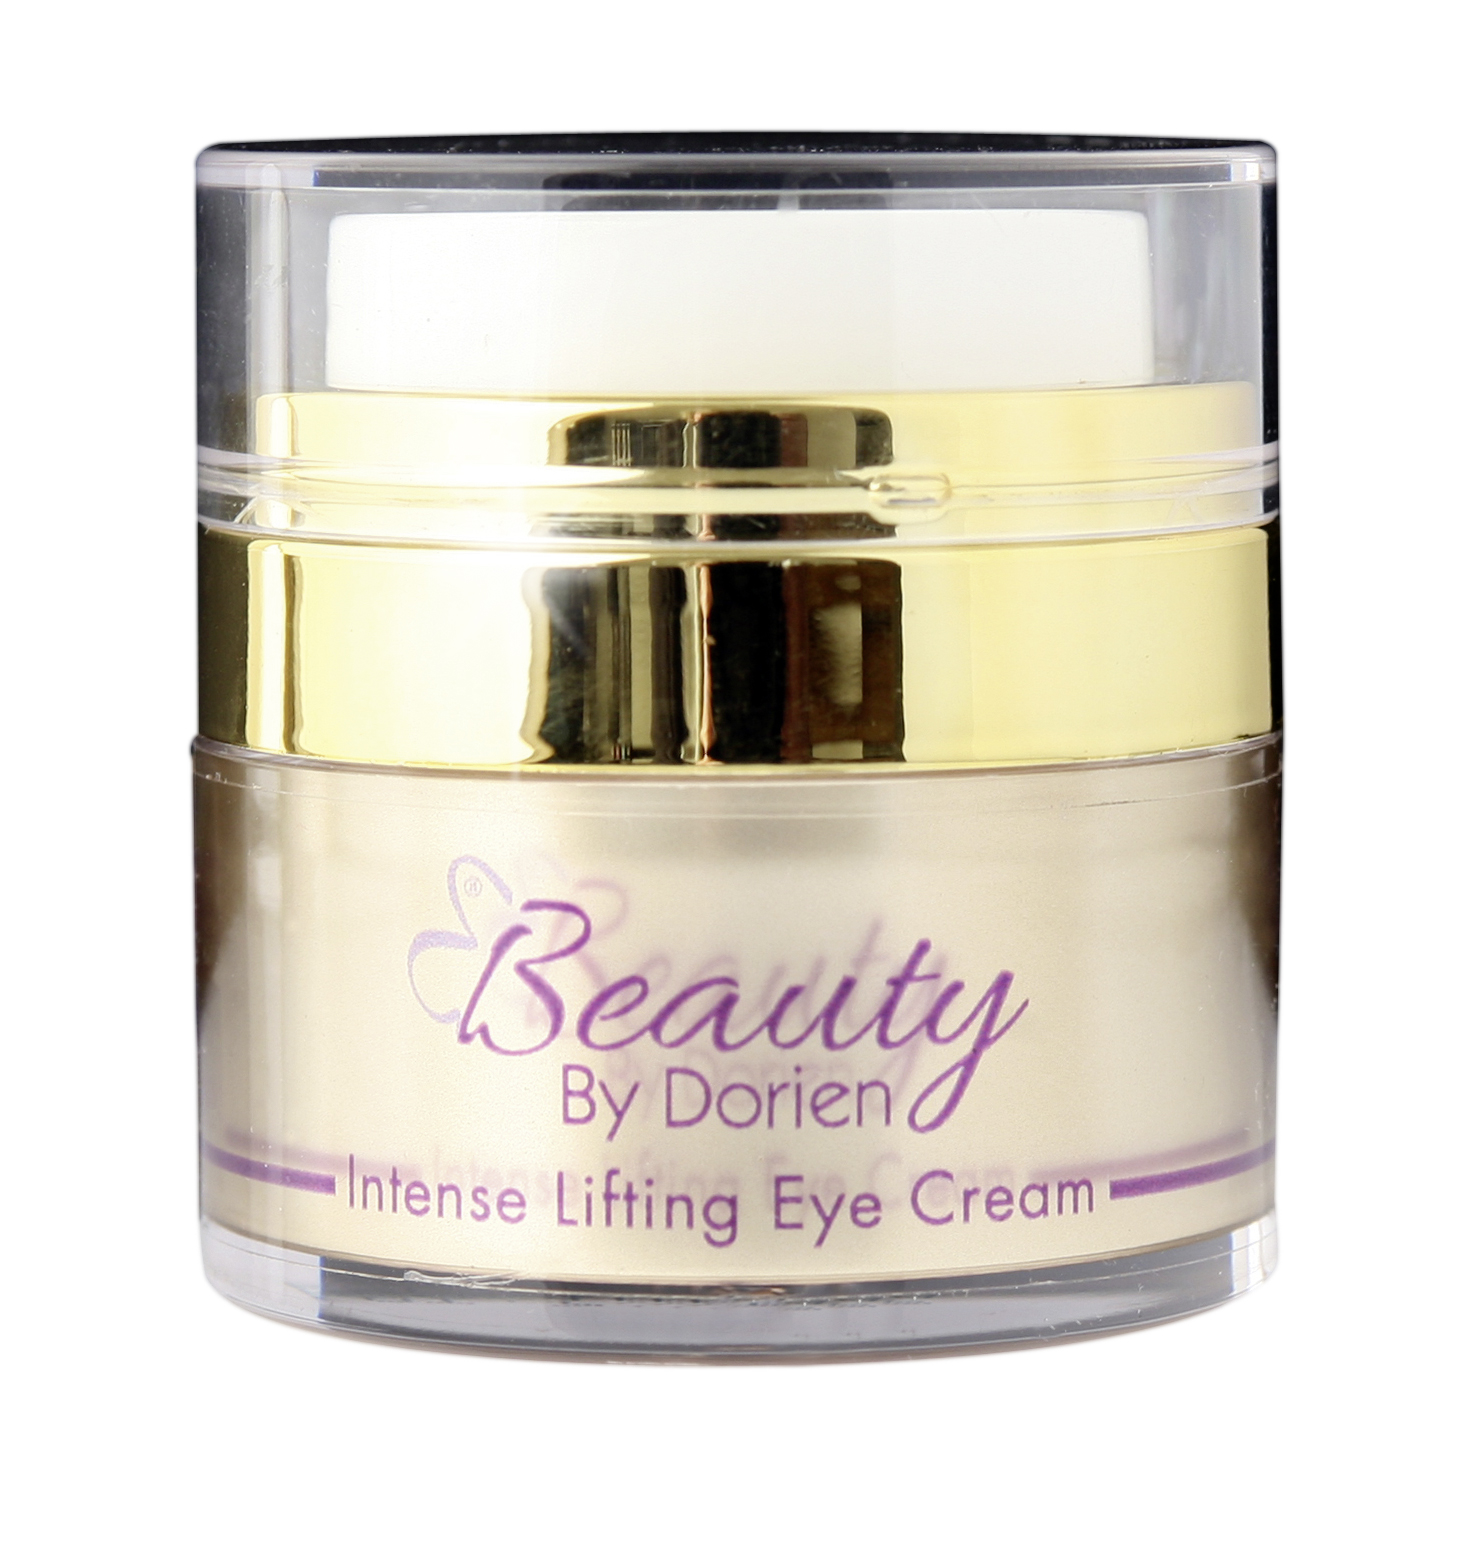 Intense Lifting Eyecream